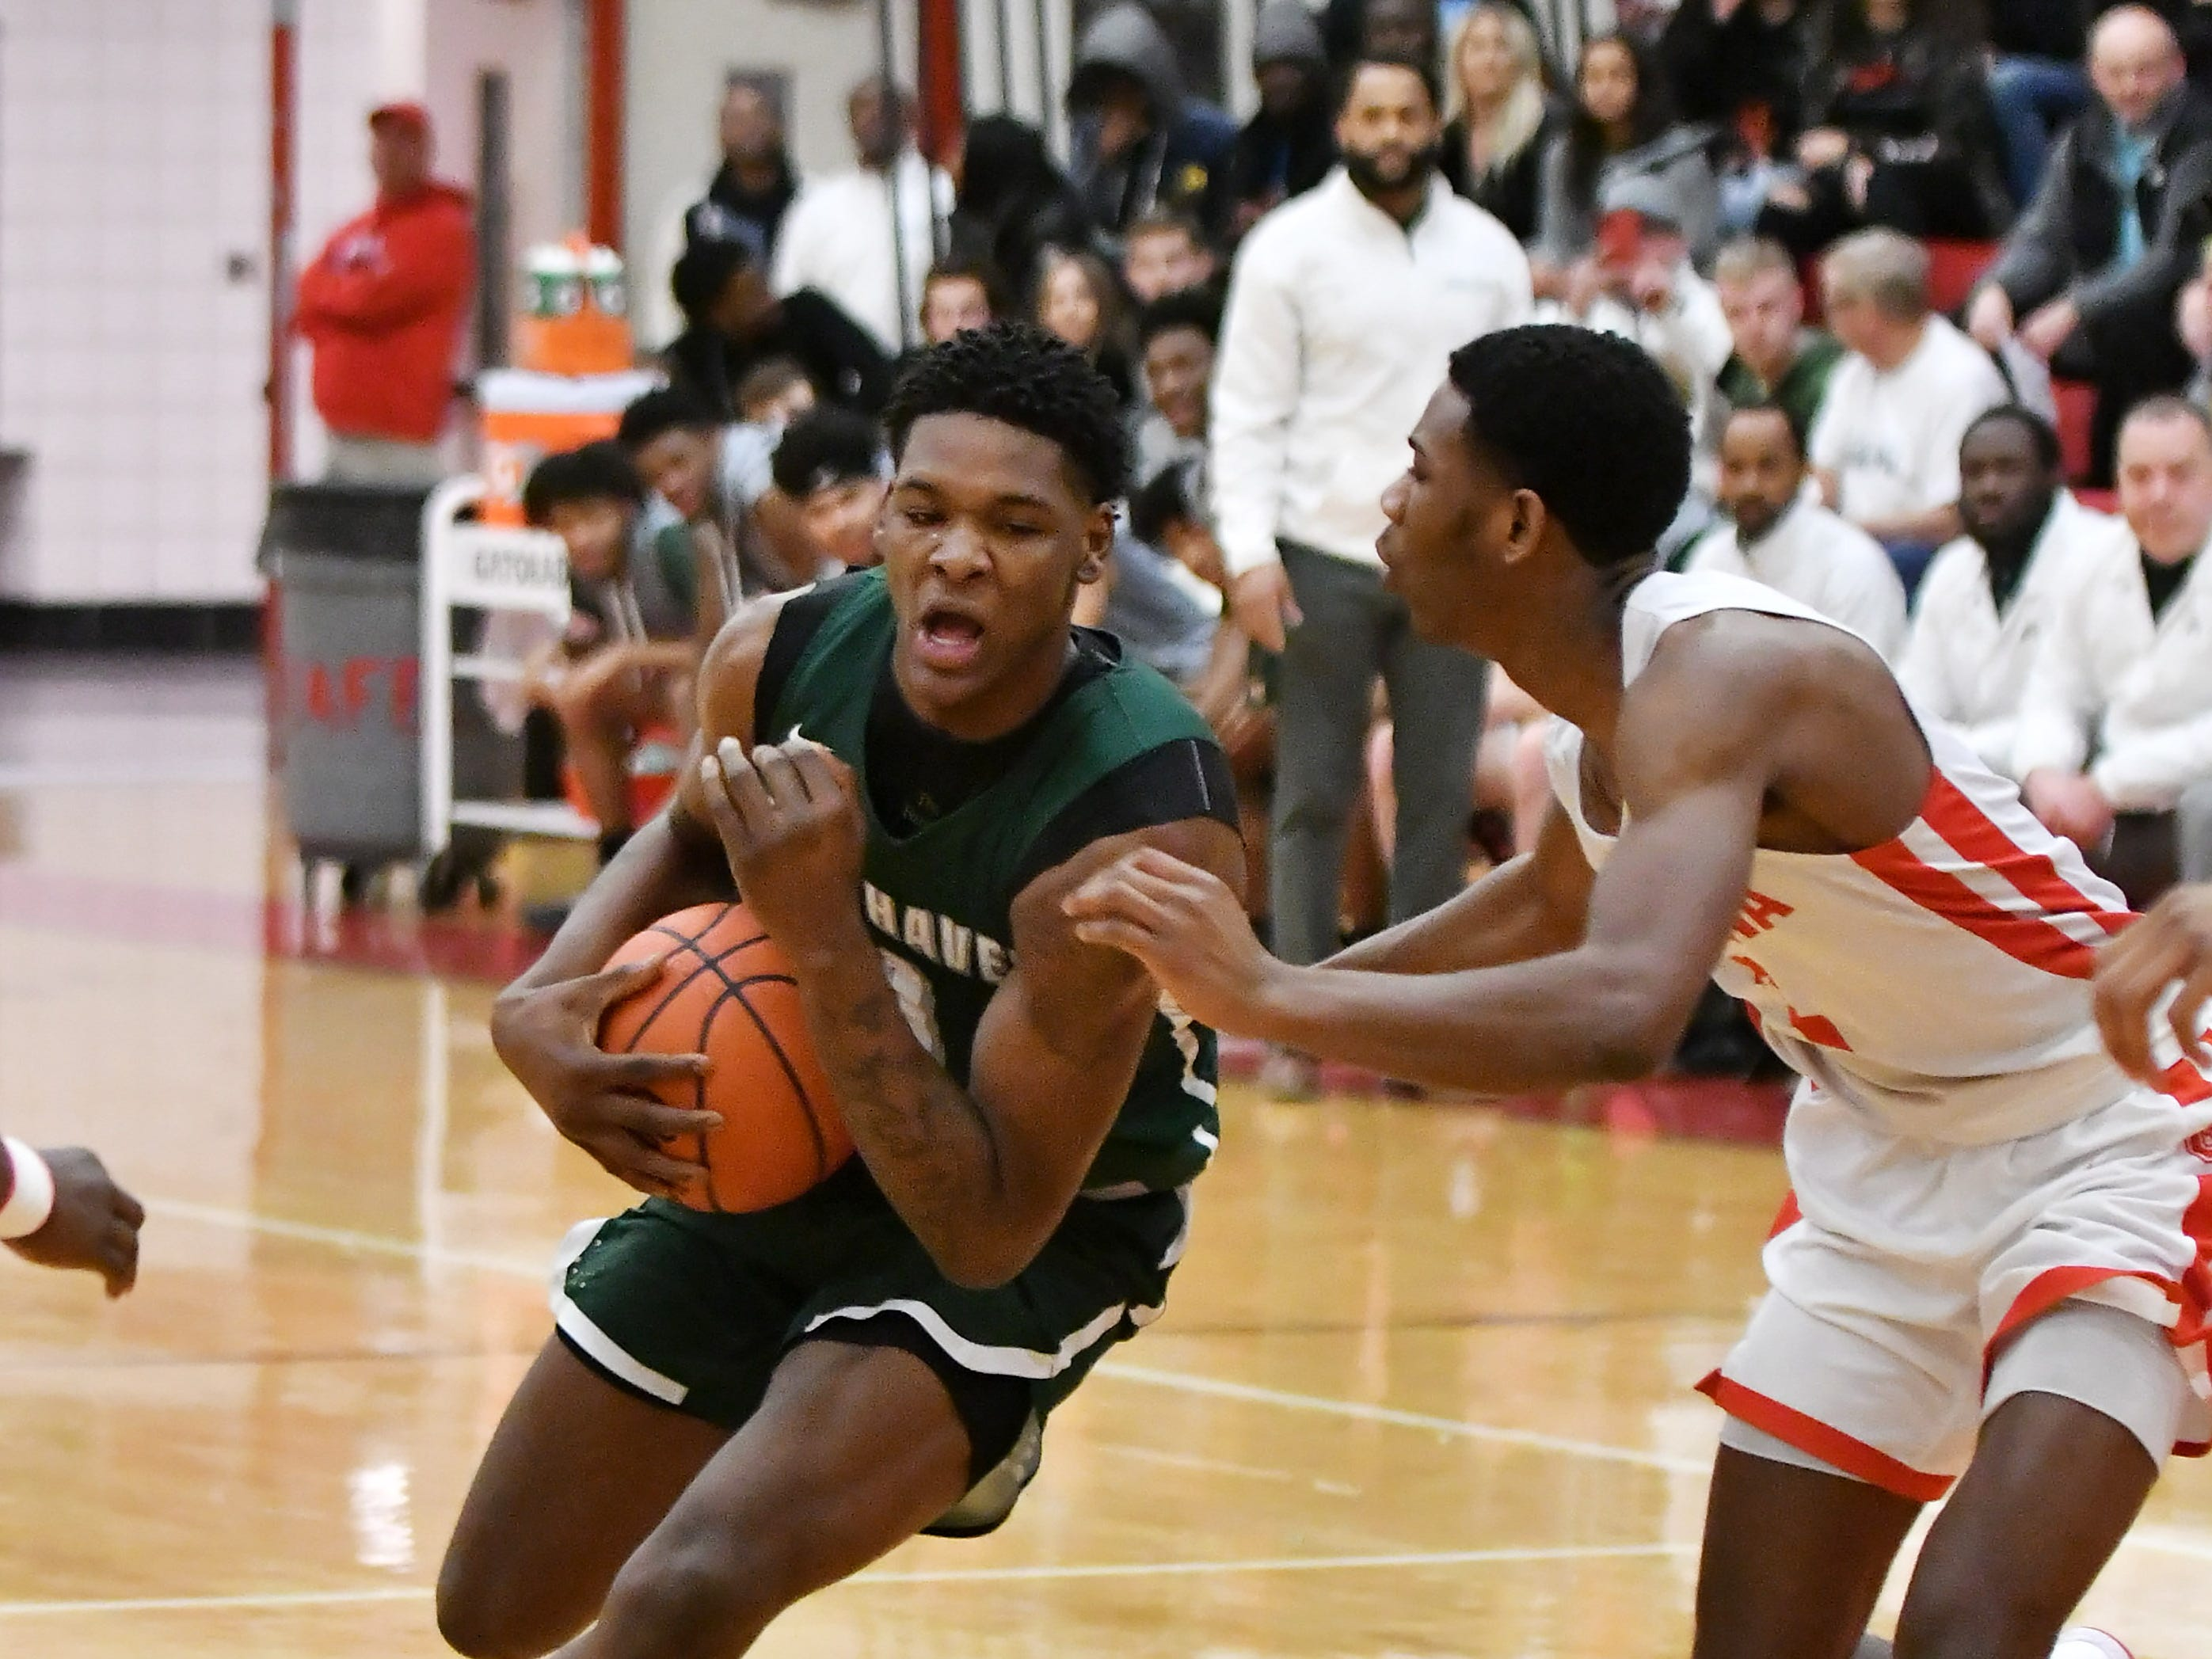 Chippewa Valley's Corey McCray, right, guards New Haven's Romeo Weems in the first half.